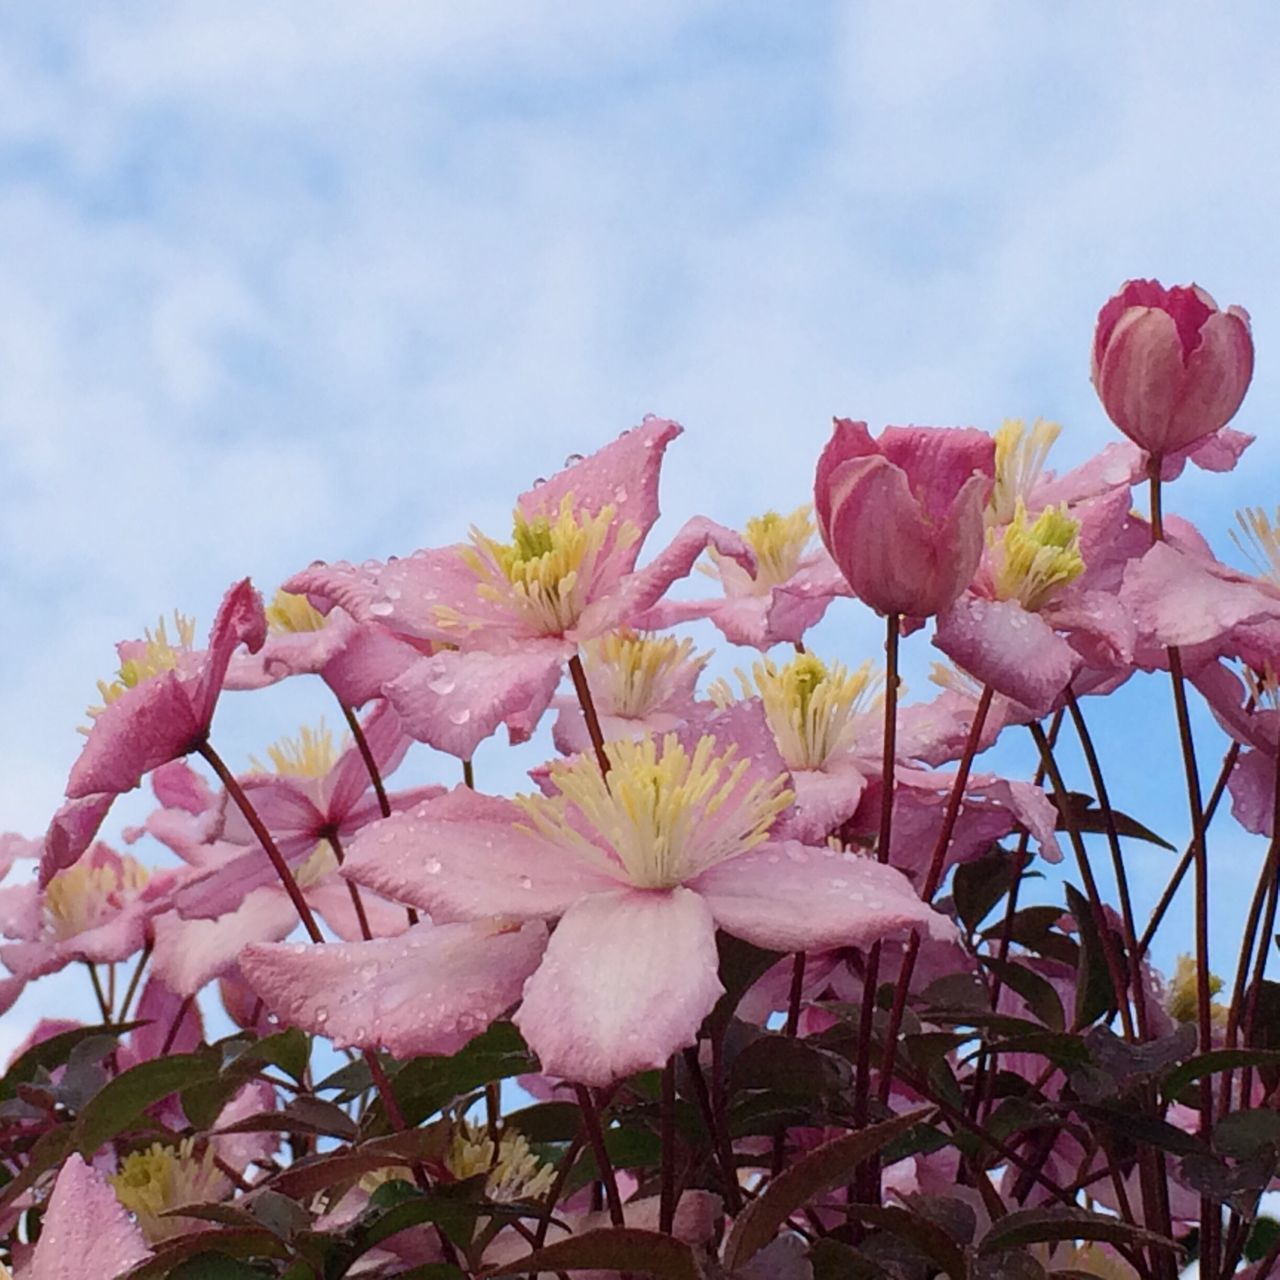 flower, fragility, beauty in nature, petal, growth, nature, freshness, pink color, flower head, blossom, no people, springtime, plant, sky, outdoors, blooming, stamen, day, low angle view, close-up